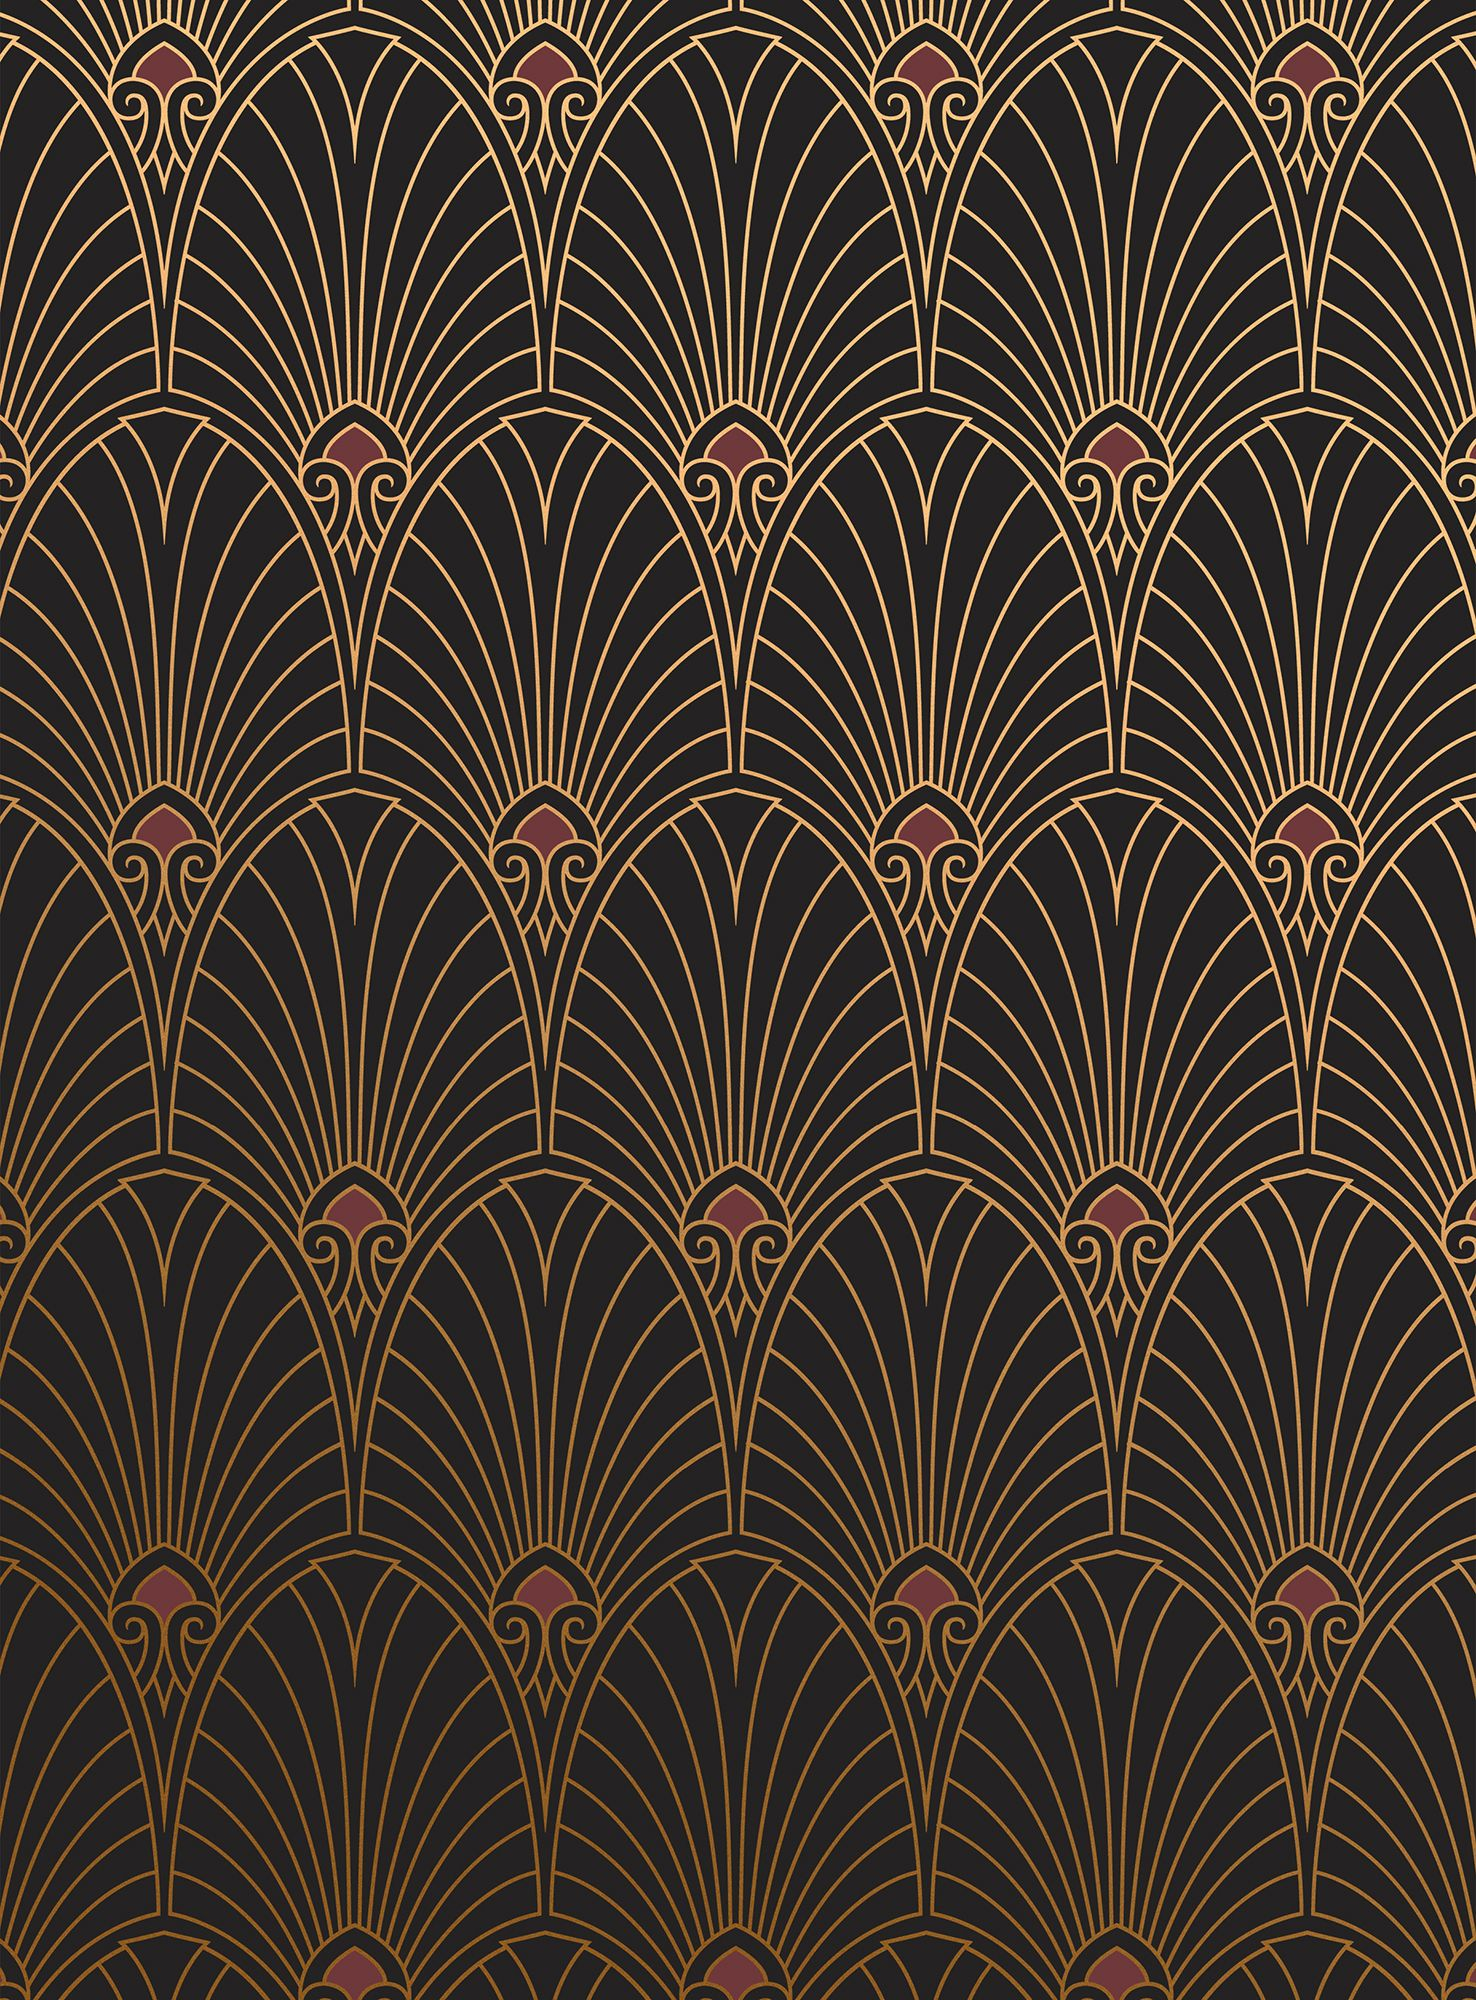 18 Art Deco Wallpaper Ideas - Decorating with 1920s Art Deco Wall Coverings